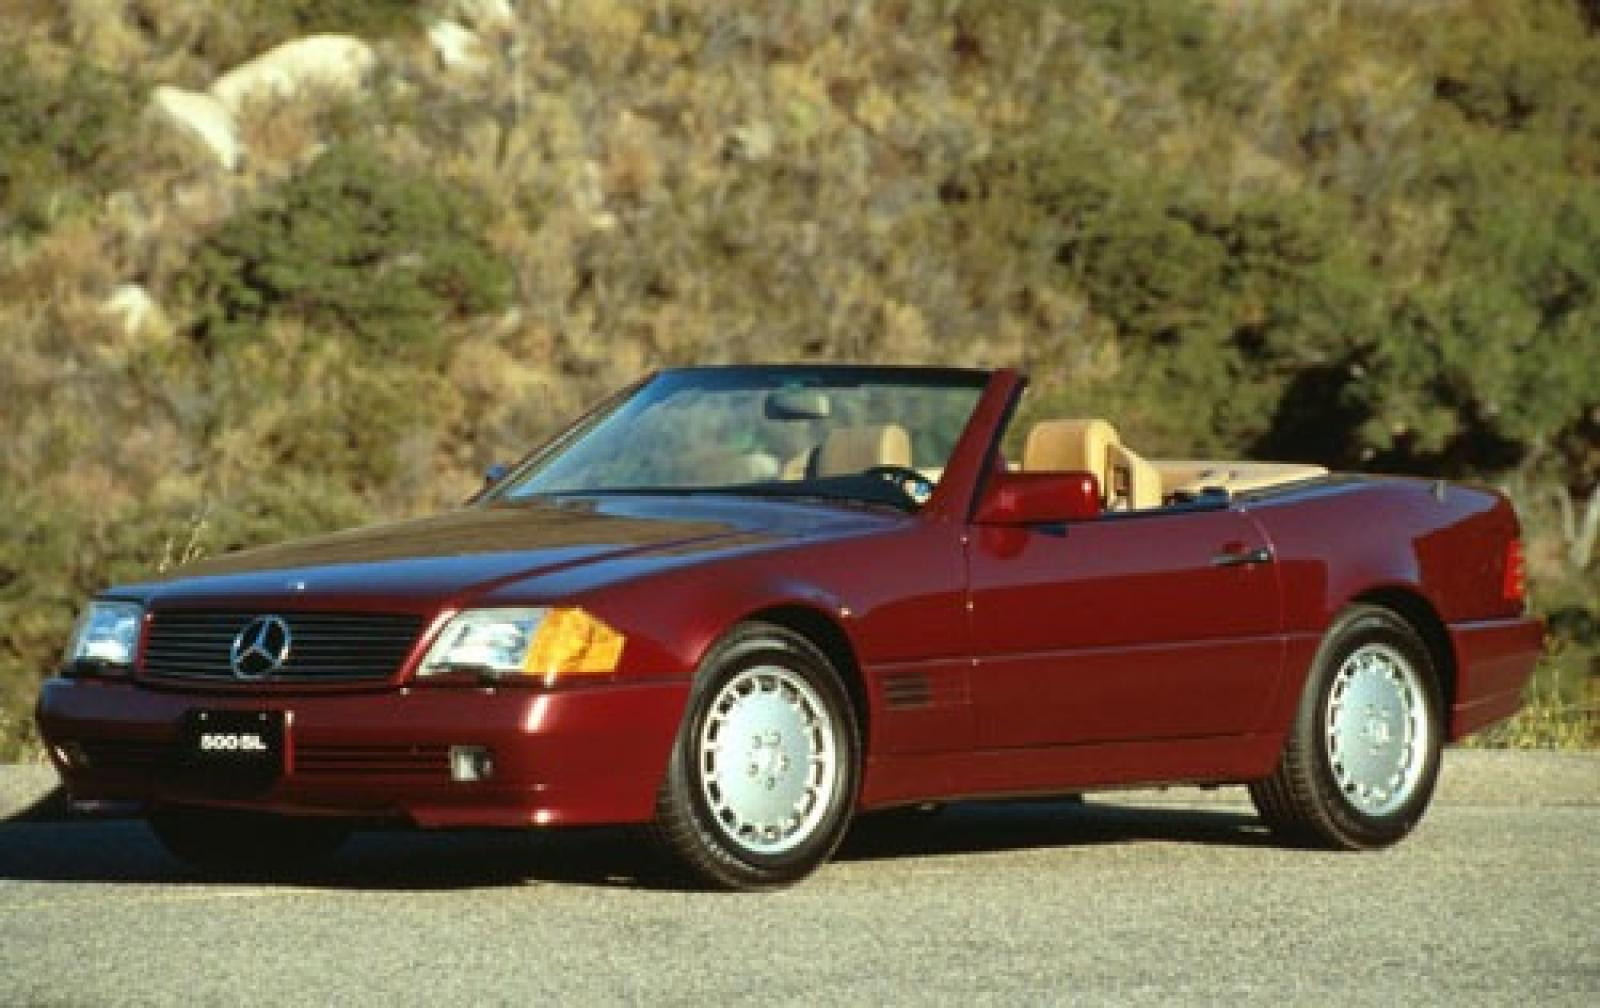 1990 mercedes benz 500 class information and photos for How much is a 1990 mercedes benz worth